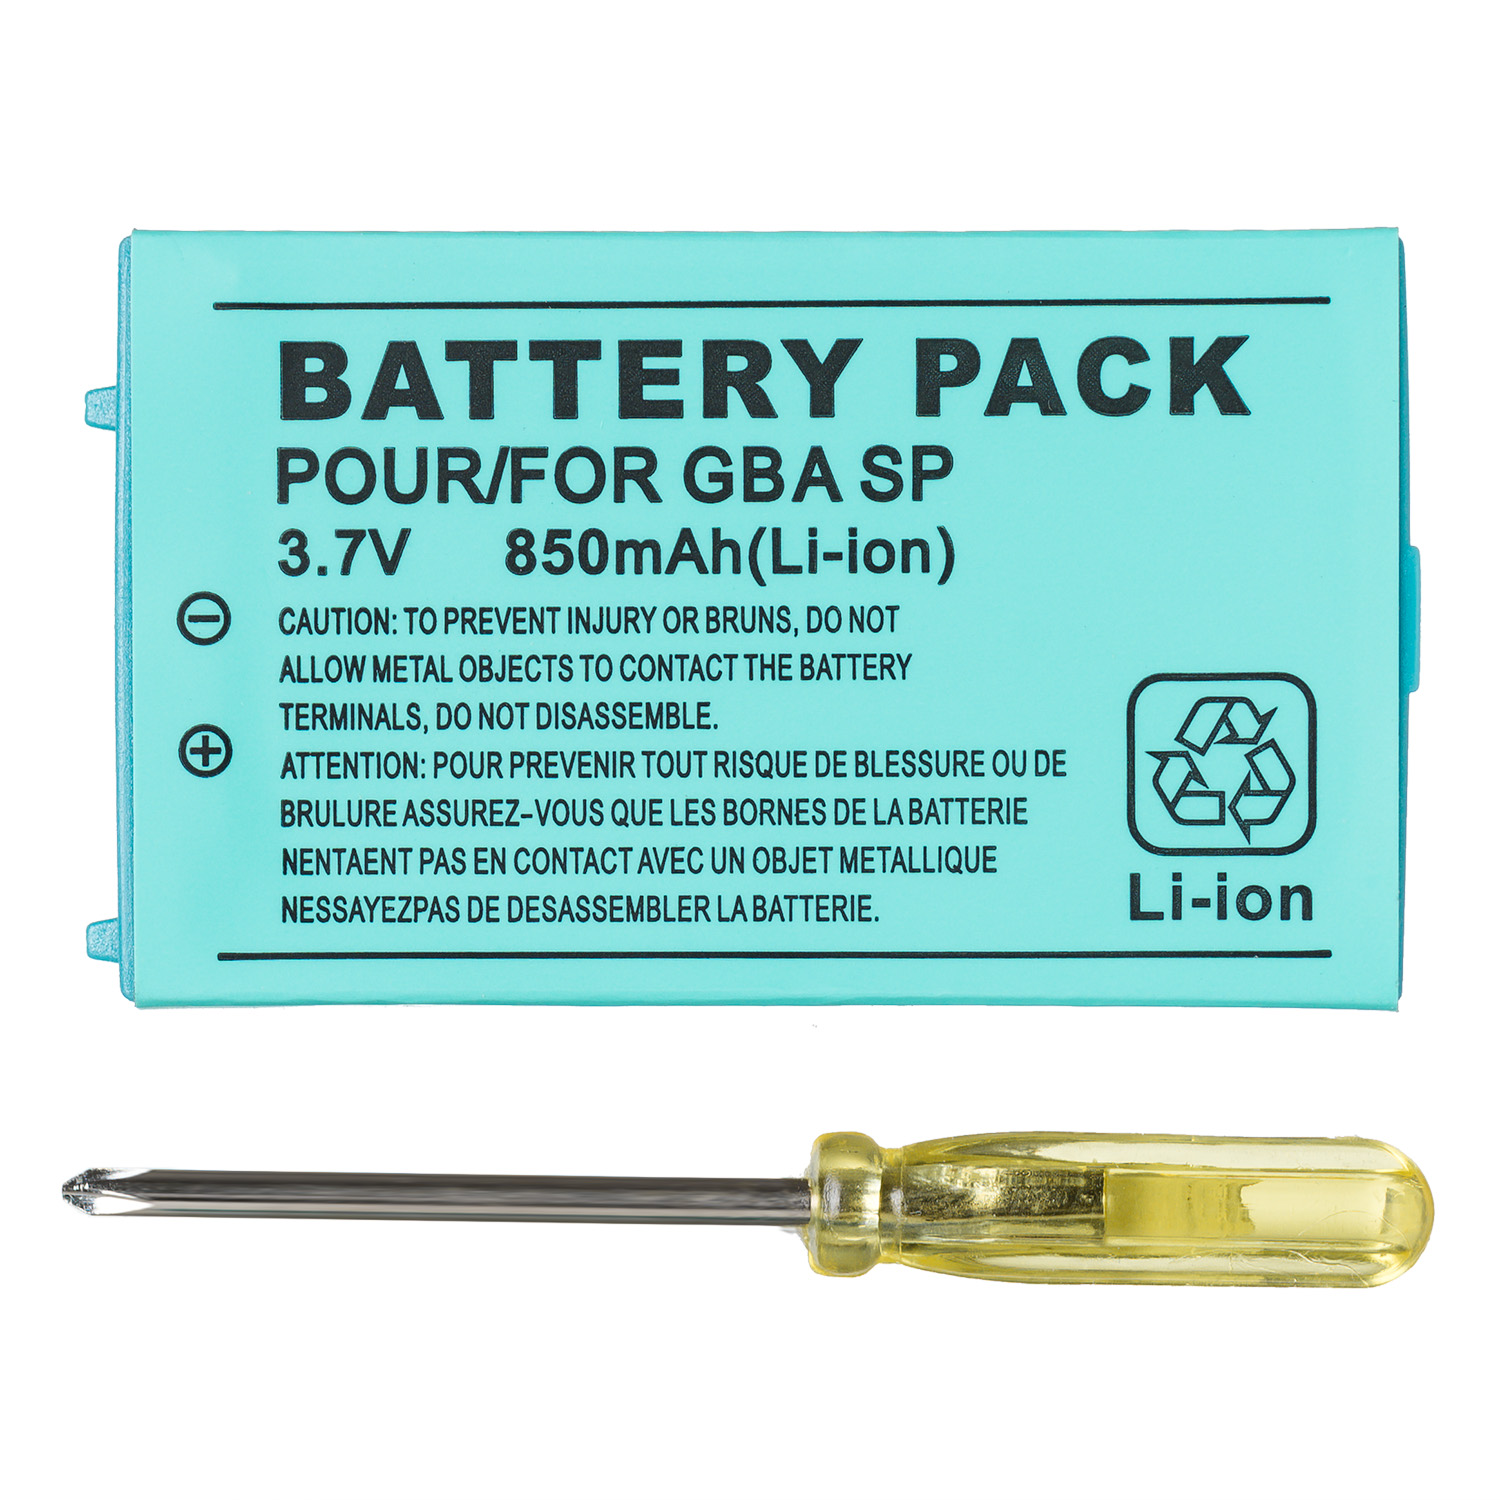 OSTENT 850mAh Rechargeable Lithium-ion Battery + Tool Pack Kit for Nintendo Gameboy Advance GBA SP